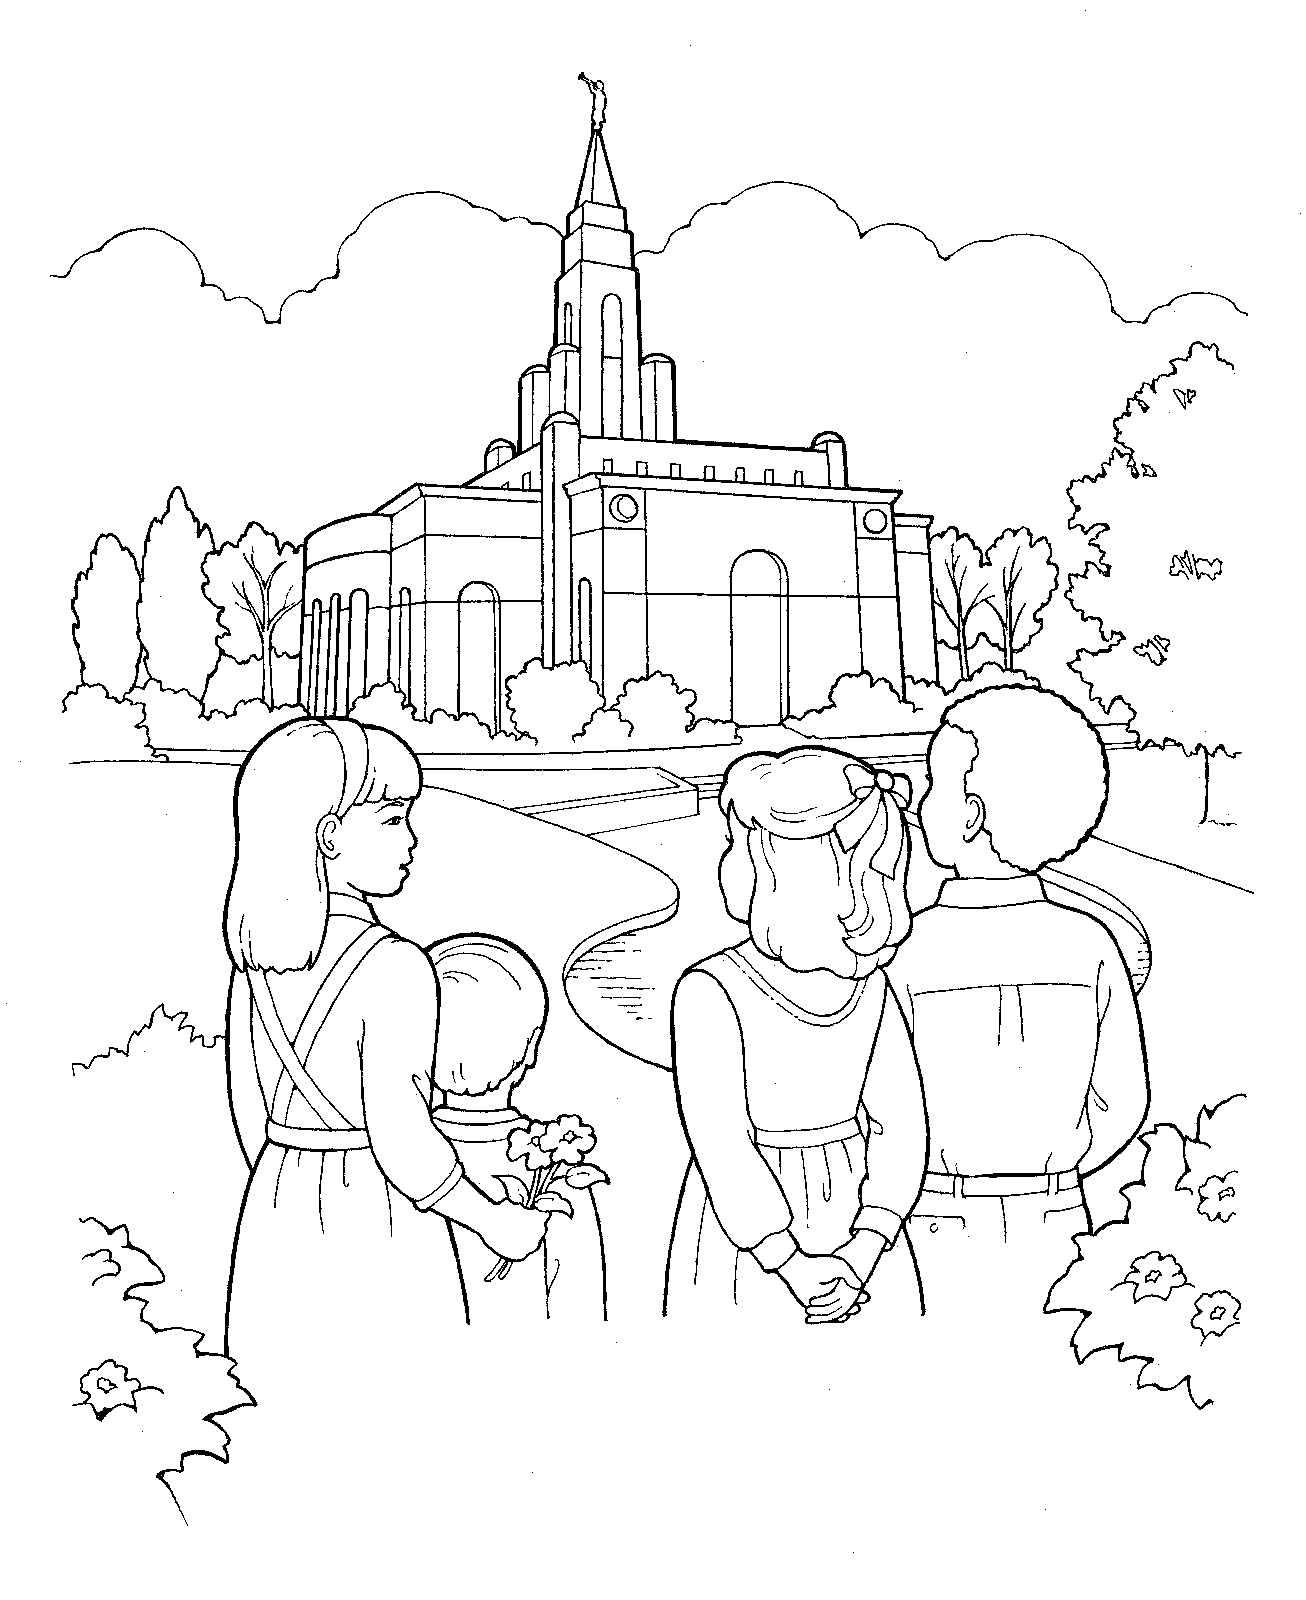 Lds Temples Drawing at GetDrawings.com | Free for personal use Lds ...